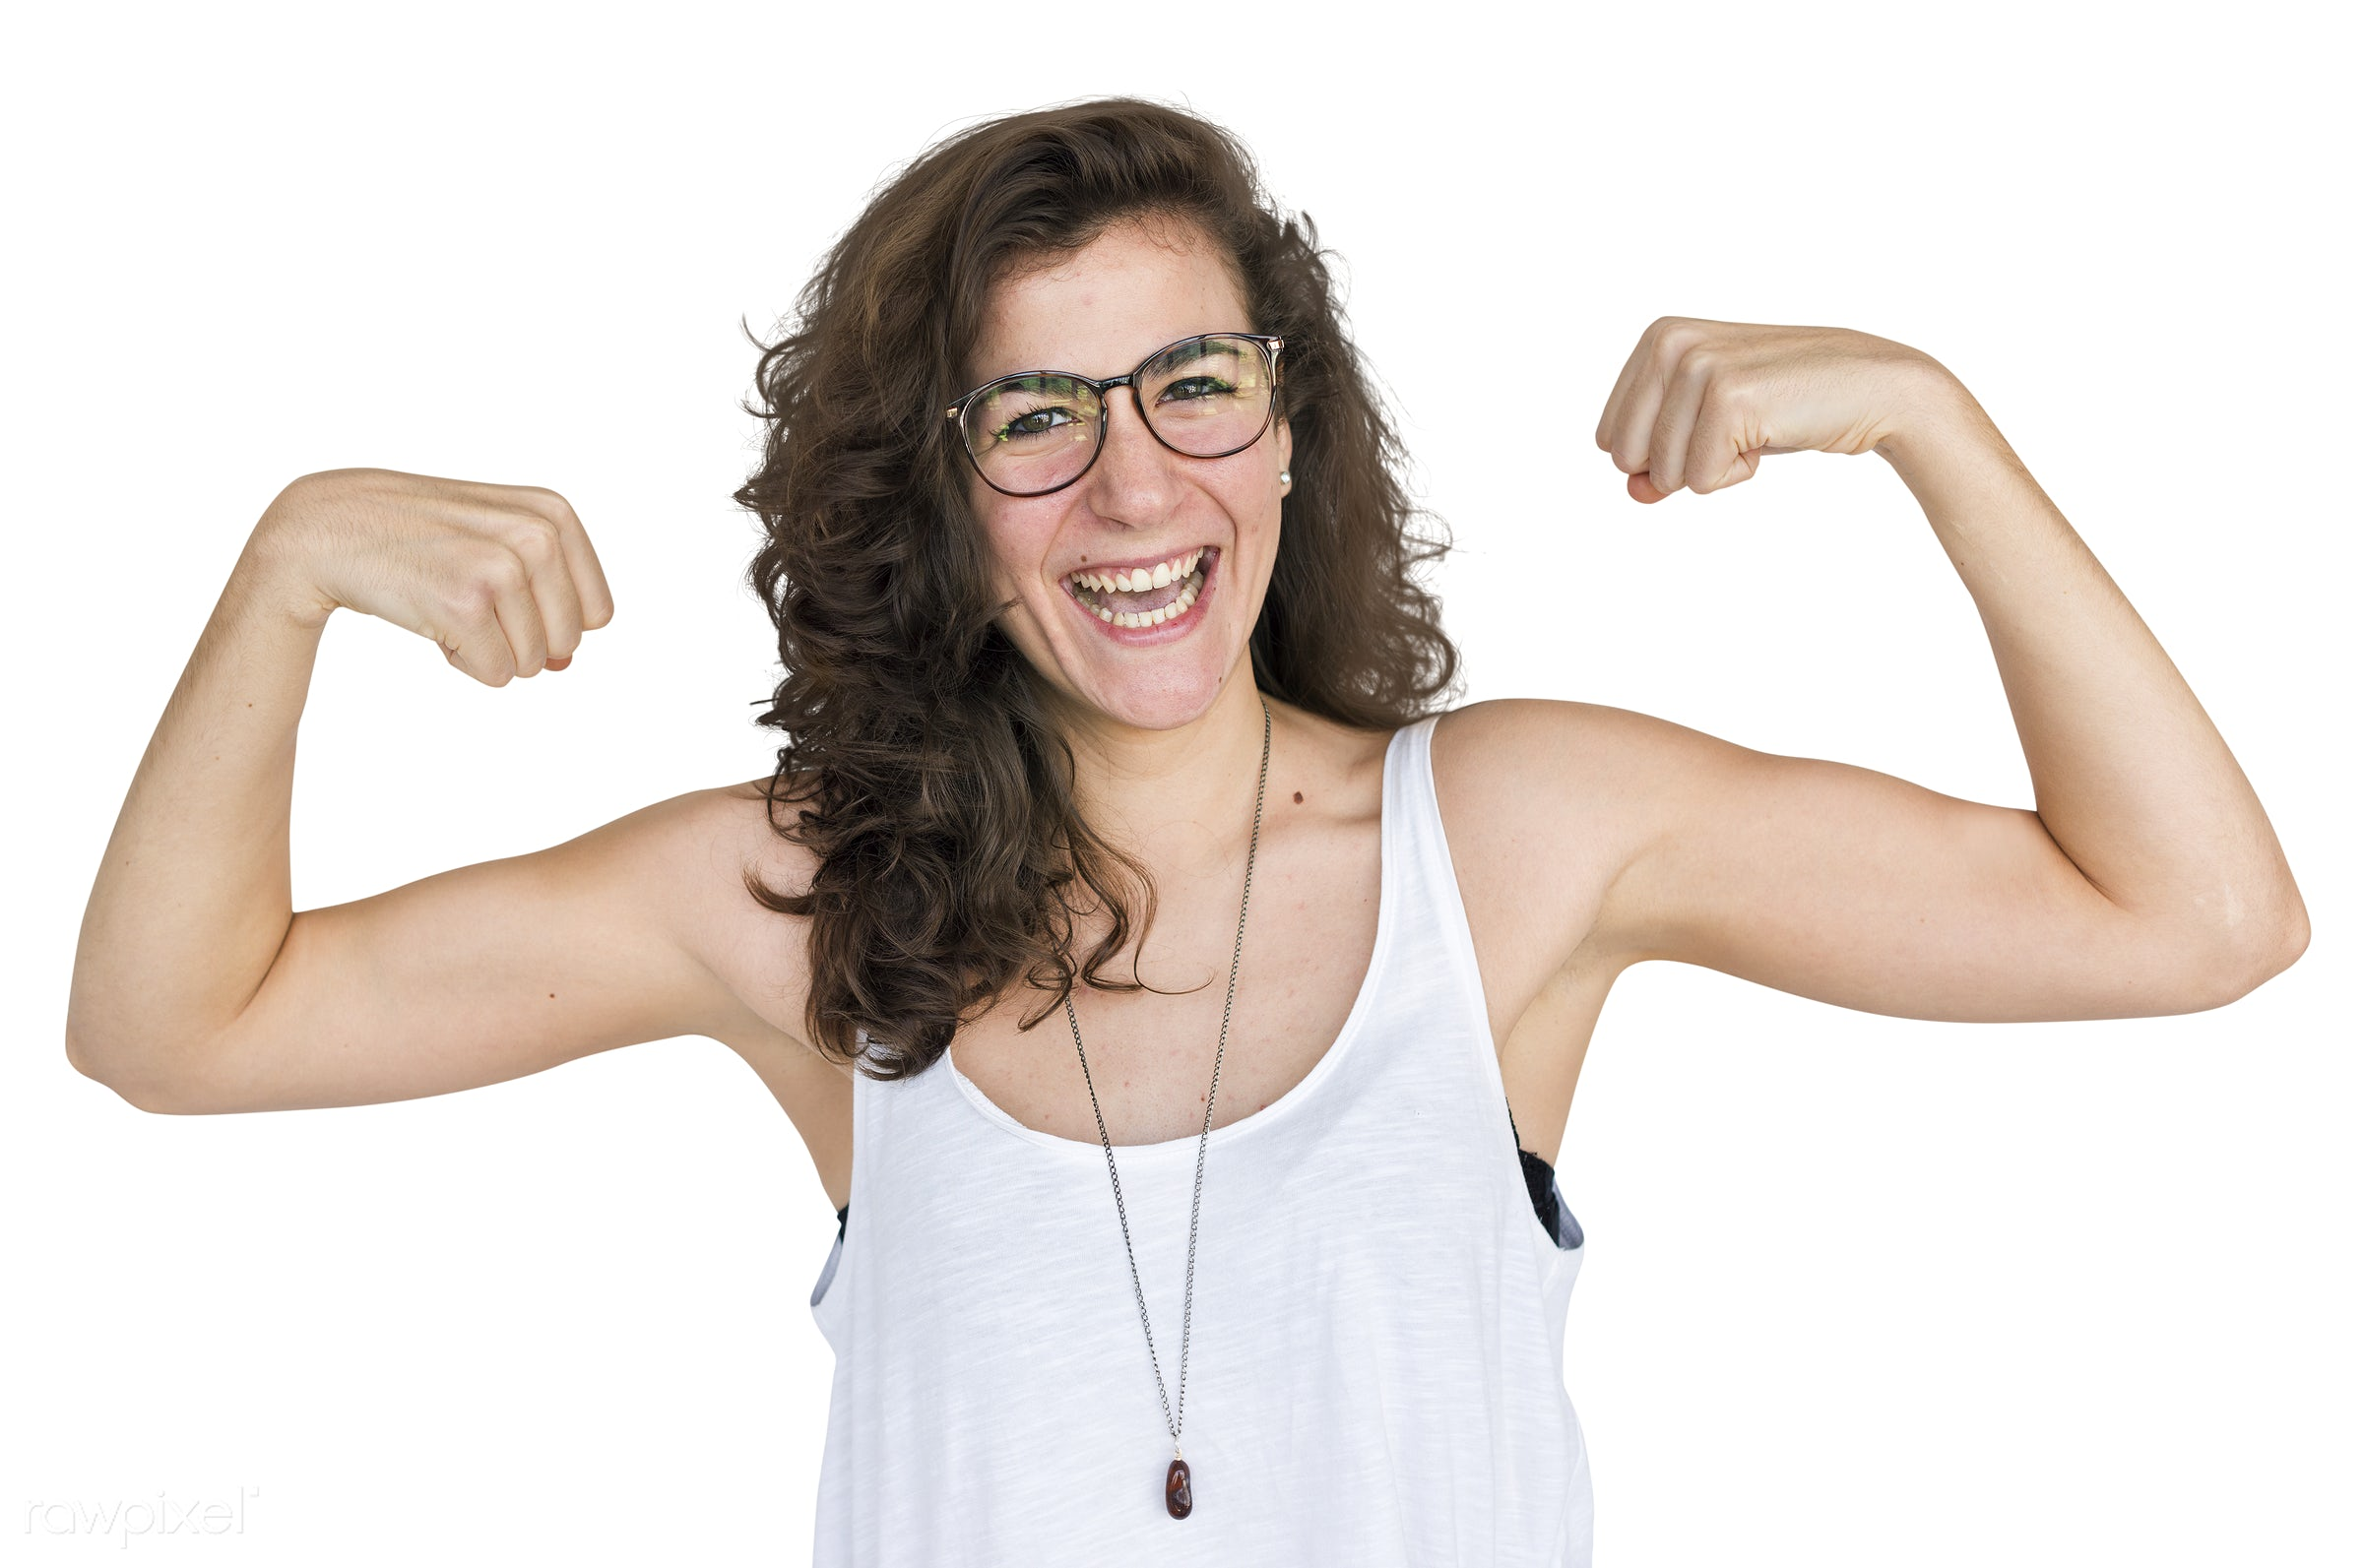 Happy woman showing off her muscles - face, adult, background, cheerful, emotion, expression, female, girl, happiness, happy...